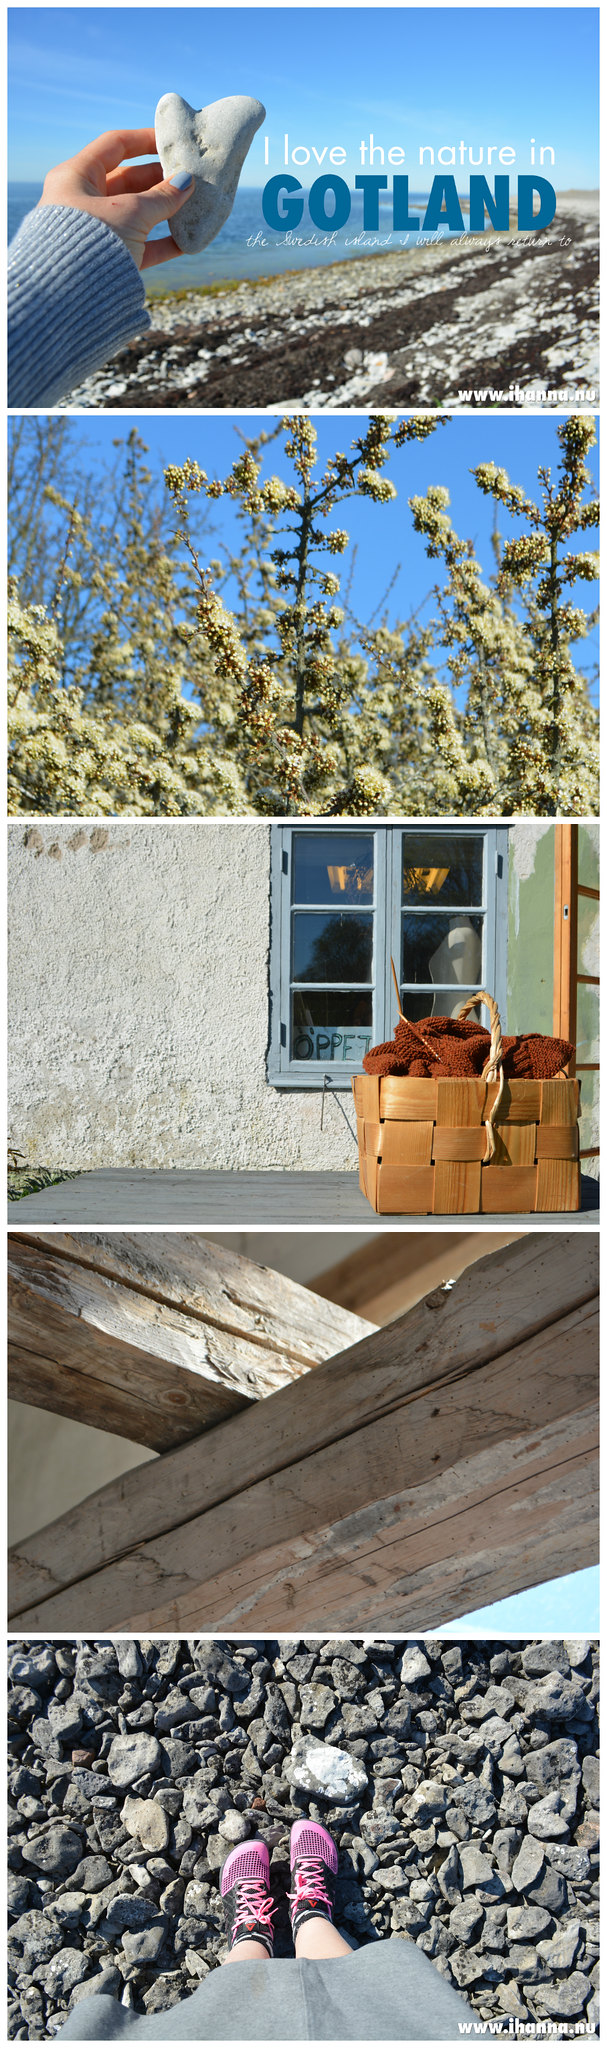 Gotland in my Heart - photos by Hanna Andersson aka iHanna of www.ihanna.nu #sweden